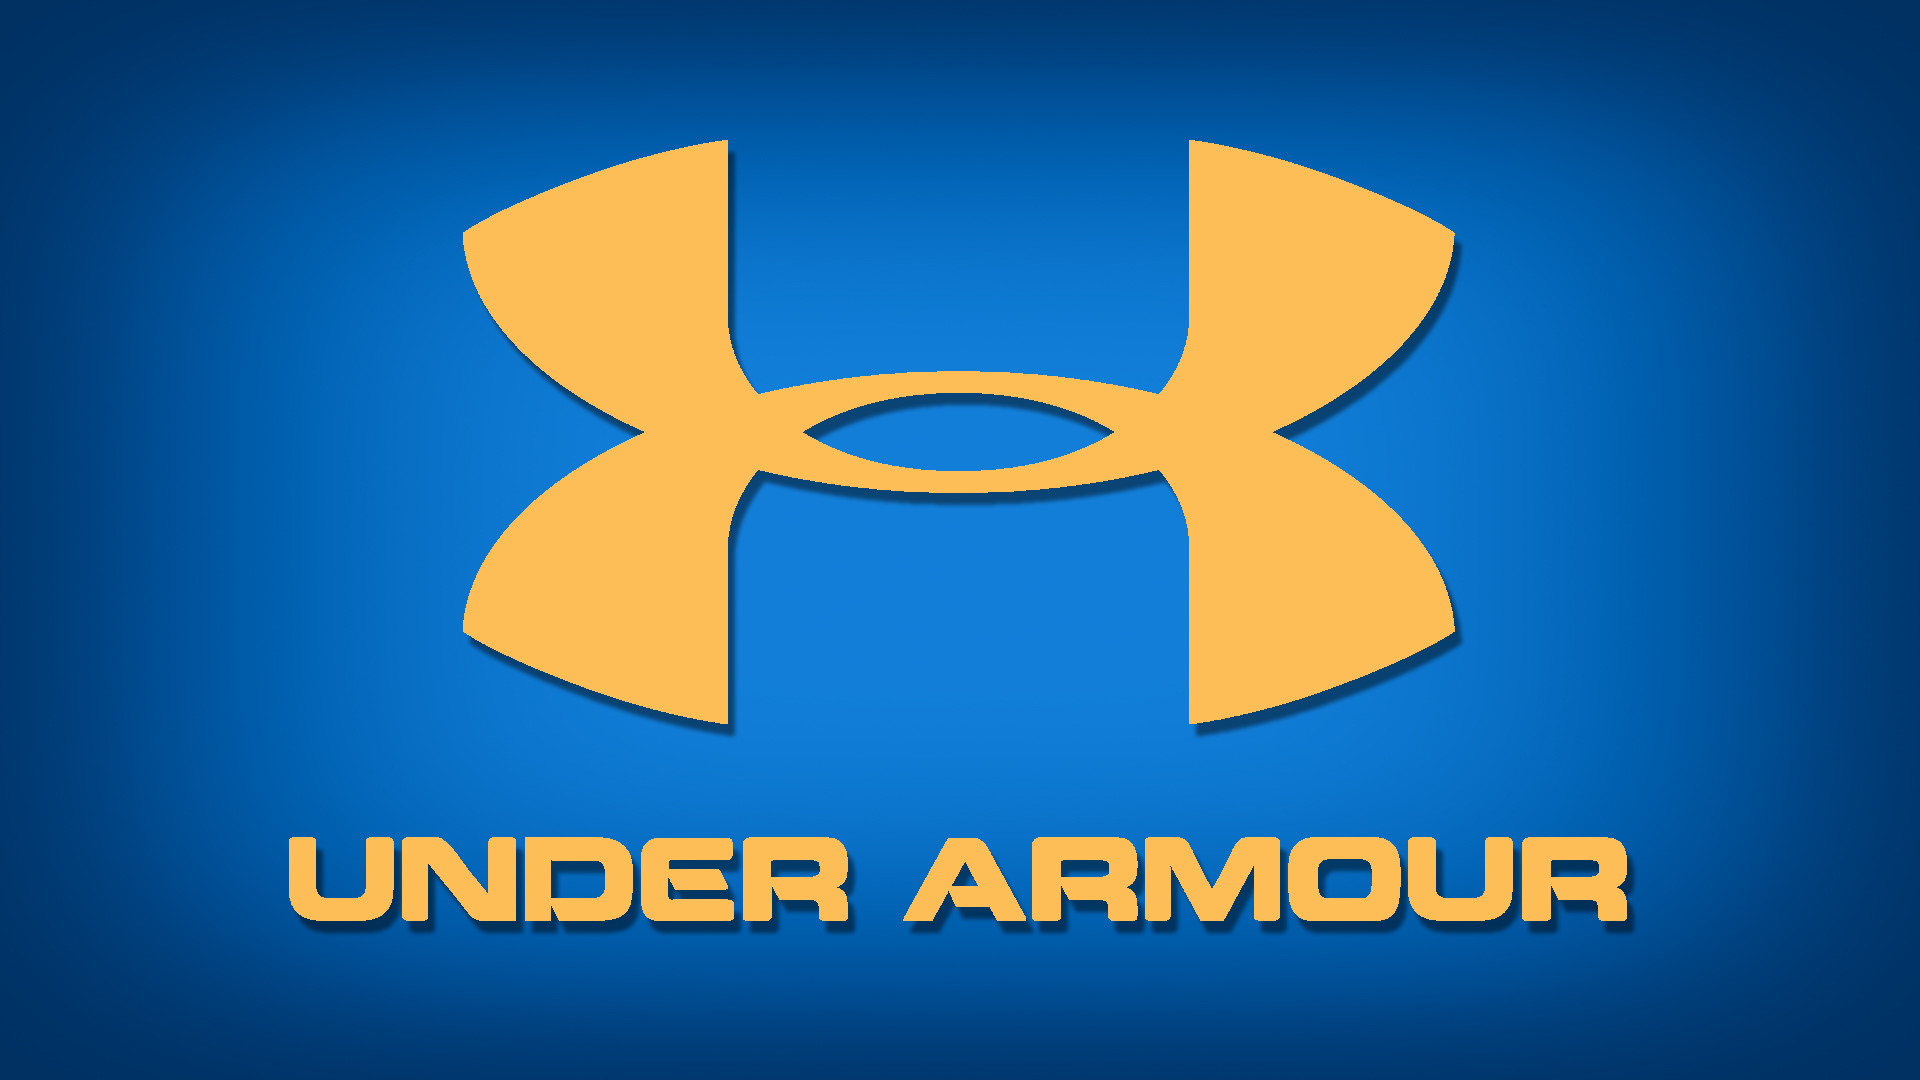 Under Armour marketing strateg on the Brand Insight Blog